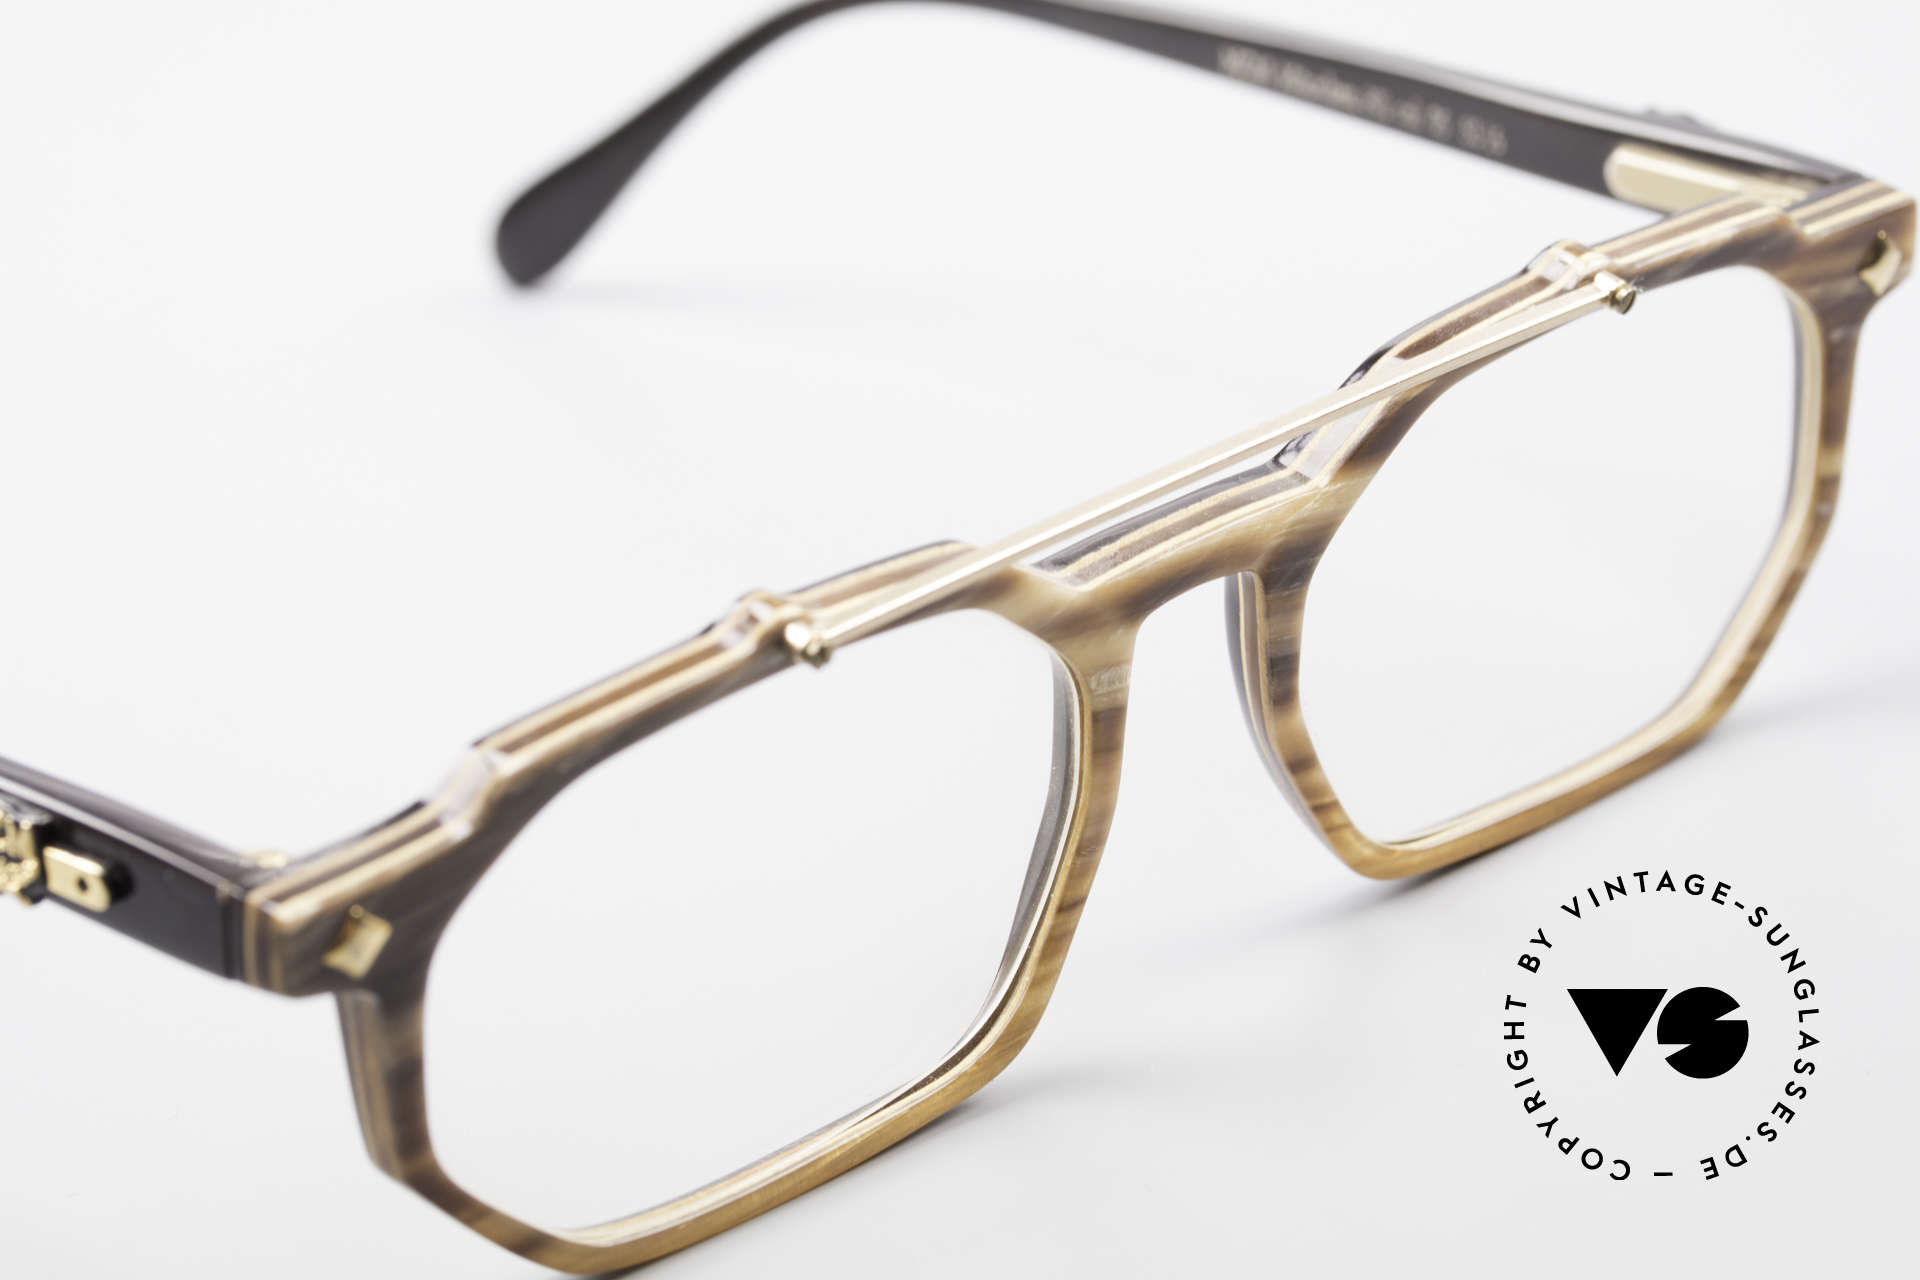 MCM München 301 Buffalo Horn Vintage Frame, never worn (like all our vintage MCM eyewear), Made for Men and Women